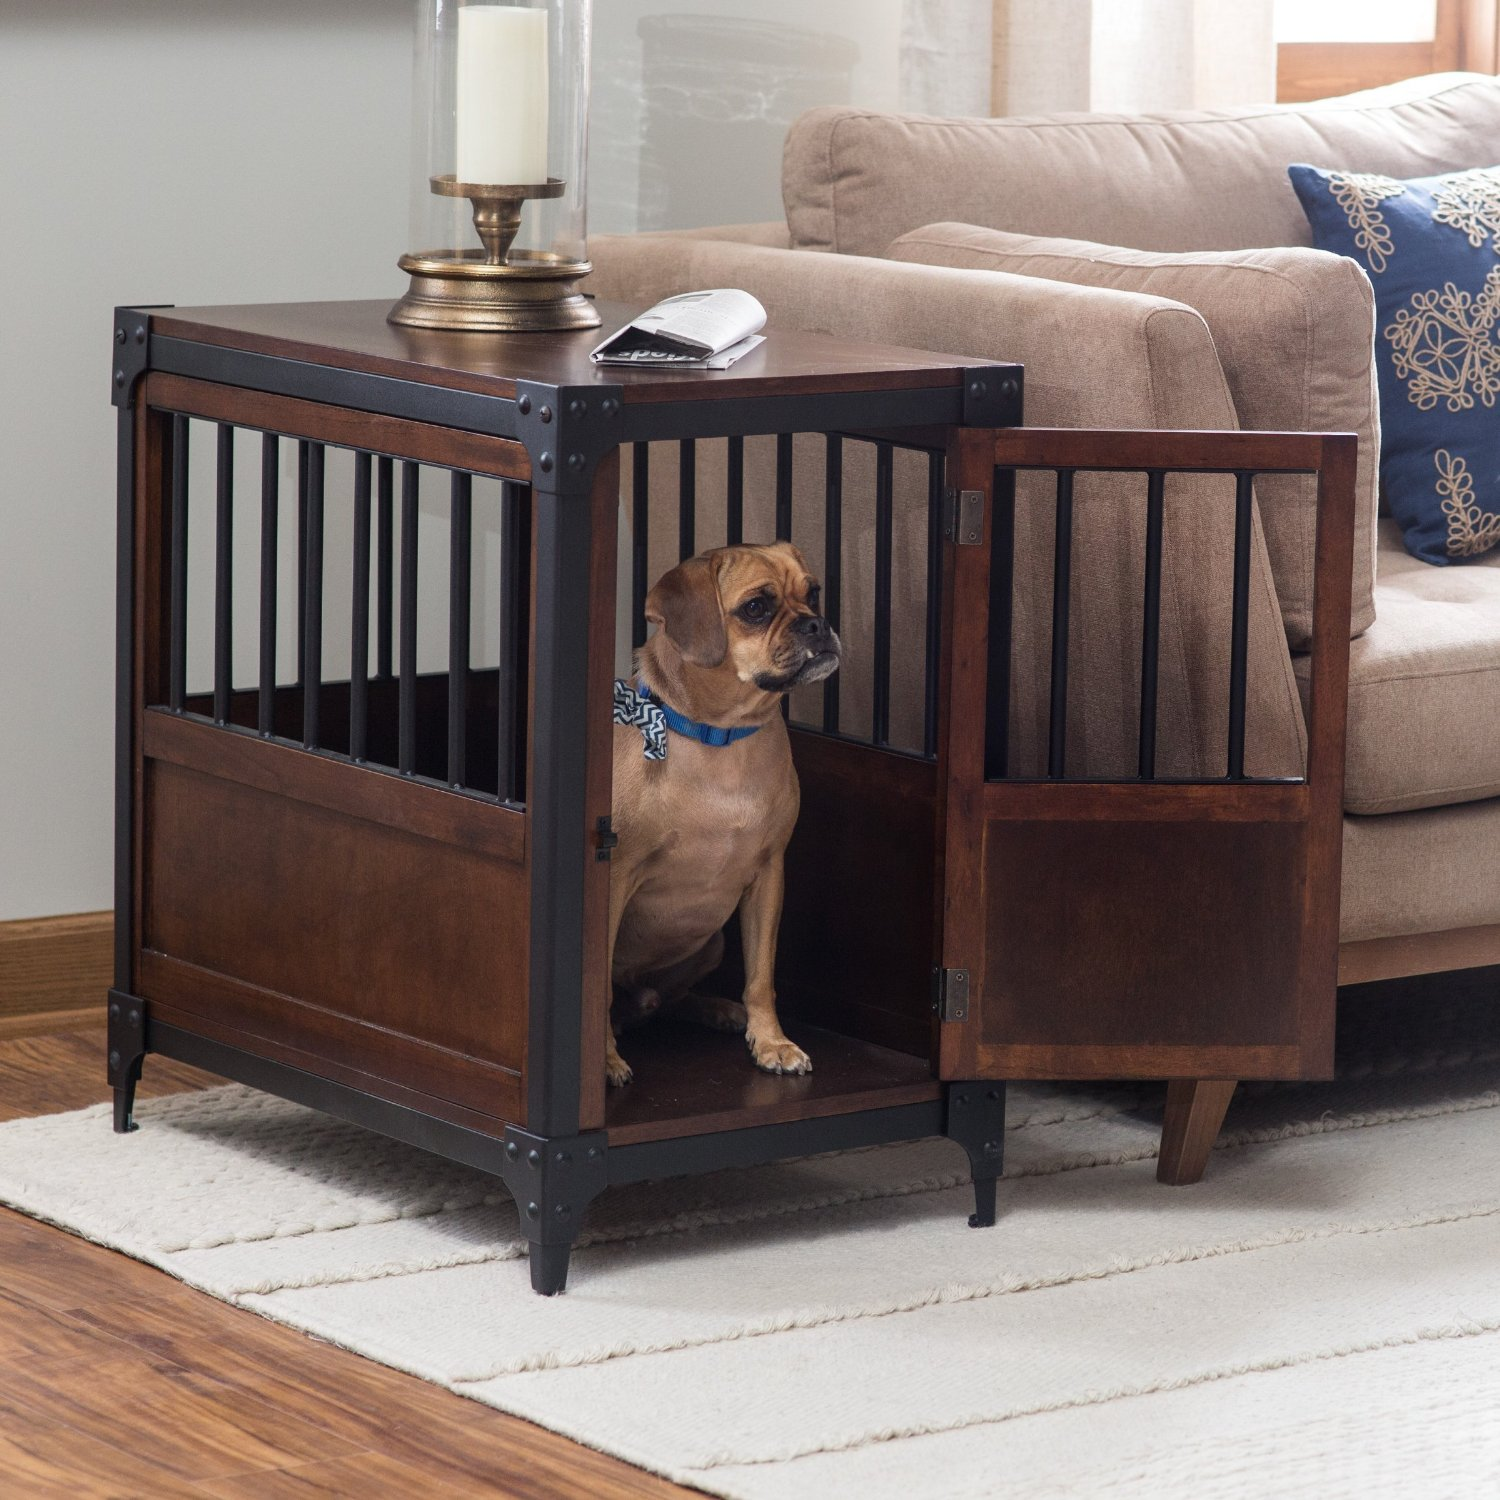 cool end table dog crate furniture | Dog Crates That Look Like Furniture Pieces